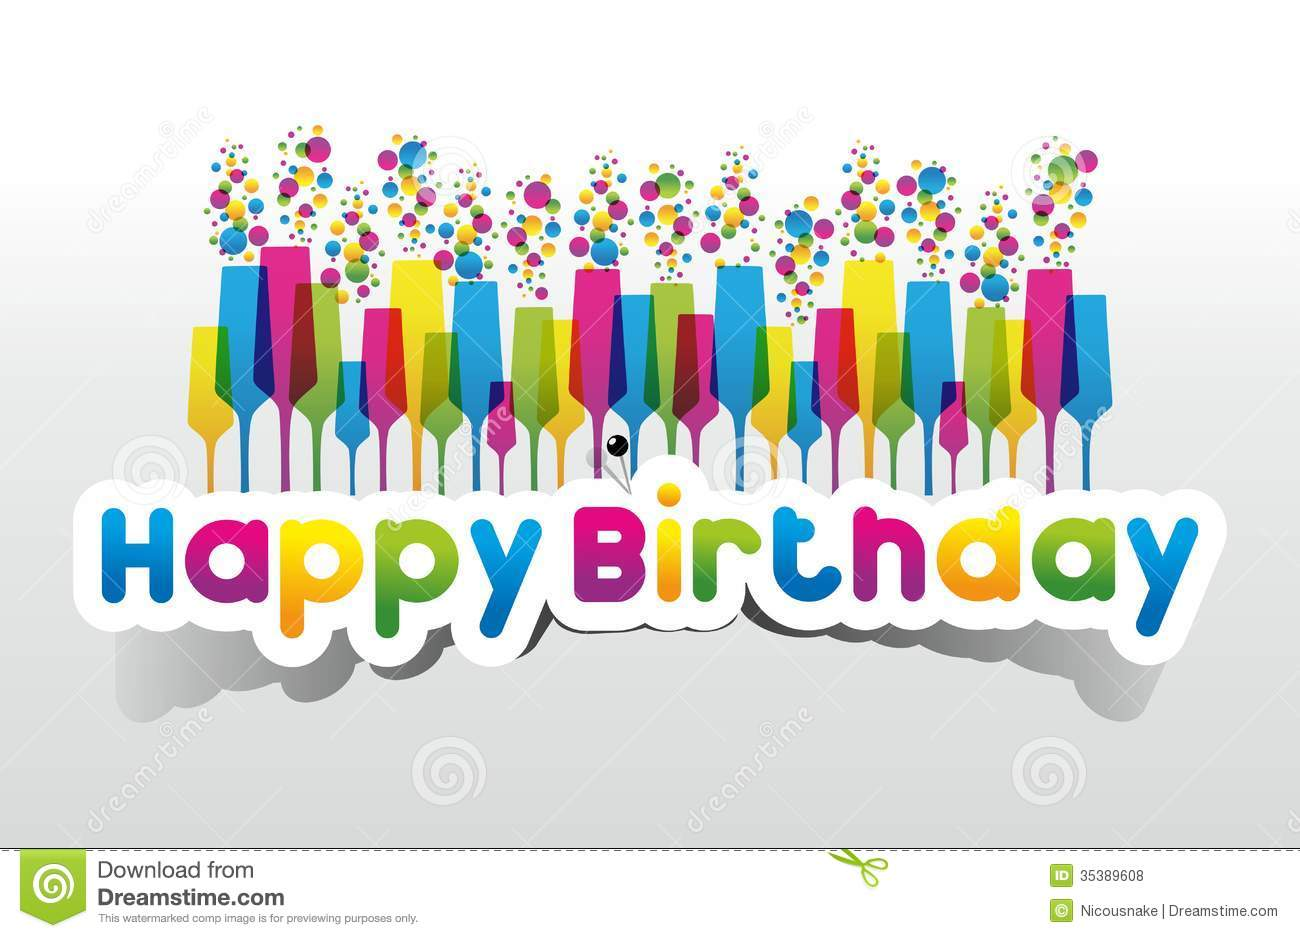 free happy birthday pics ; happy-birthday-coloured-card-gradient-backgroun-background-vector-illustration-35389608